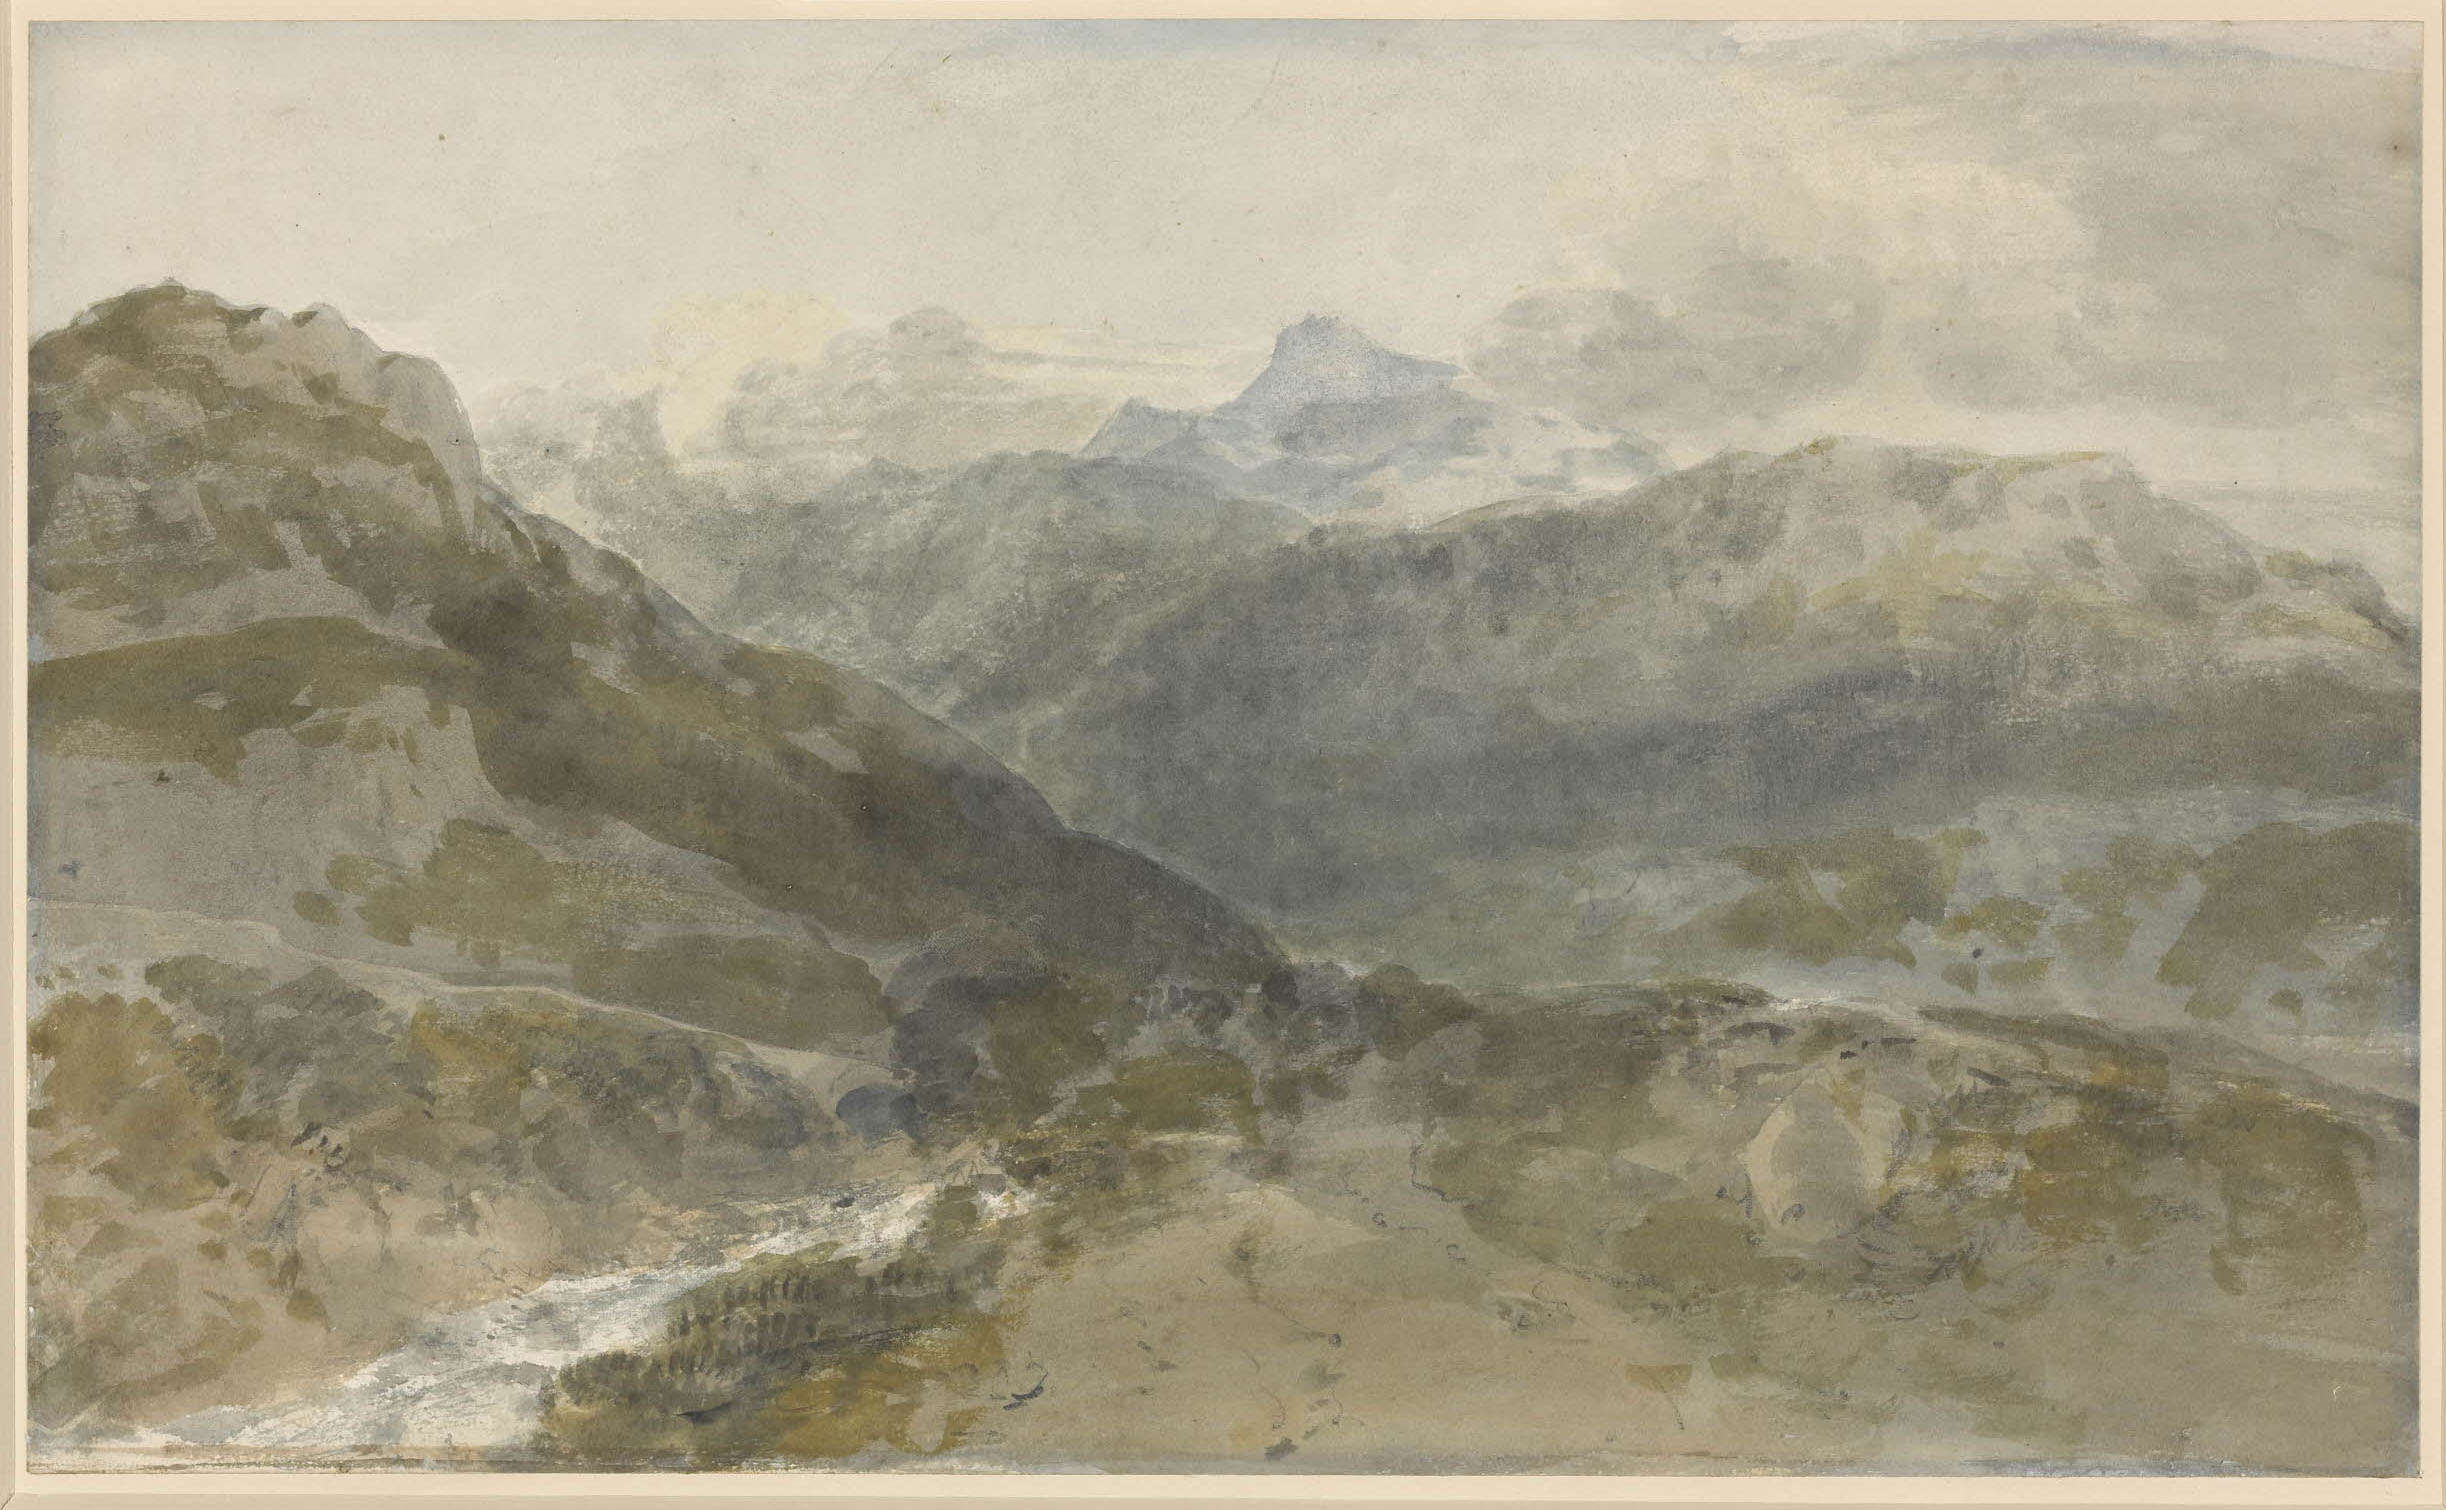 J M W Turner Ben Arthur from the entrance to Glen Croe above Ardgartan, 1801 Watercolour, 247 x 418 mm British Museum, London, R.W.Lloyd Bequest, 1958-7-12-405 as 'Mountain Study: a view in North Wales?' Image courtesy of The British Museum. To see the image in the British Museum's own online catalogue, click on the following link, and then use your browser's 'back' button to return to this page: http://www.britishmuseum.org/research/collection_online/collection_object_details.aspx?objectId=748939&partId=1&searchText=turner+welsh+mountain&page=1